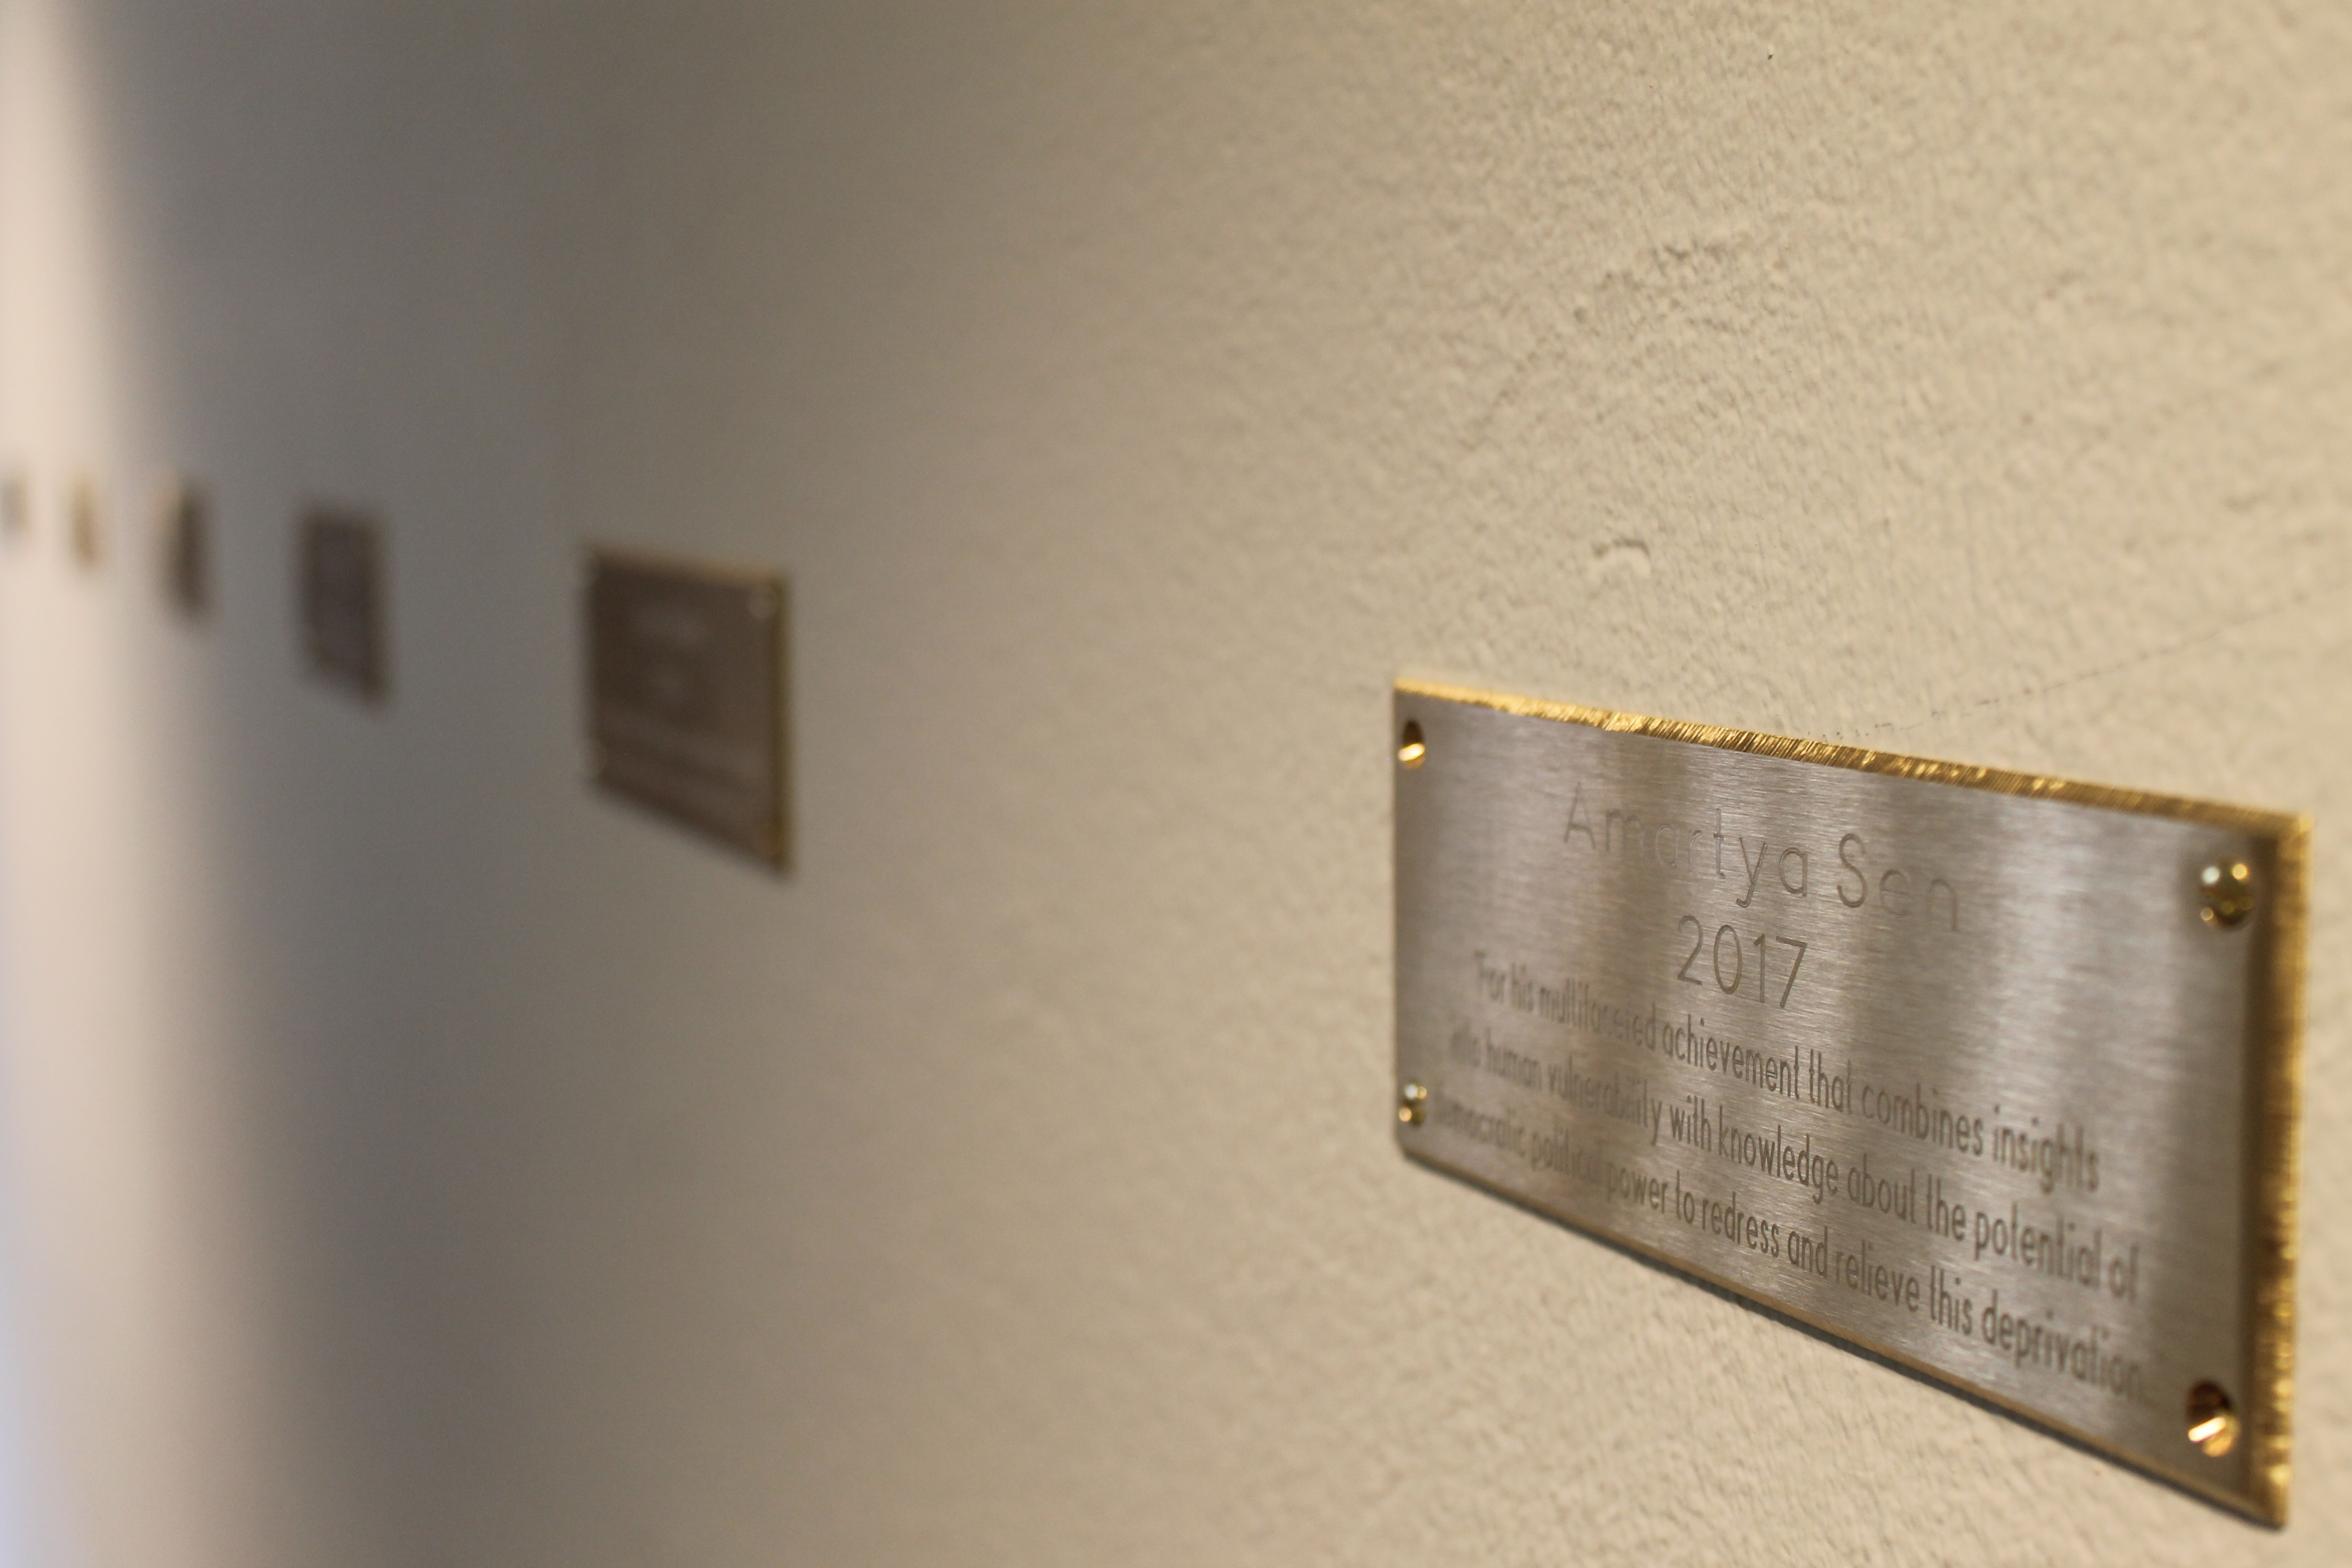 Metallic badges contain each laureate's name, year of award and award motivation.